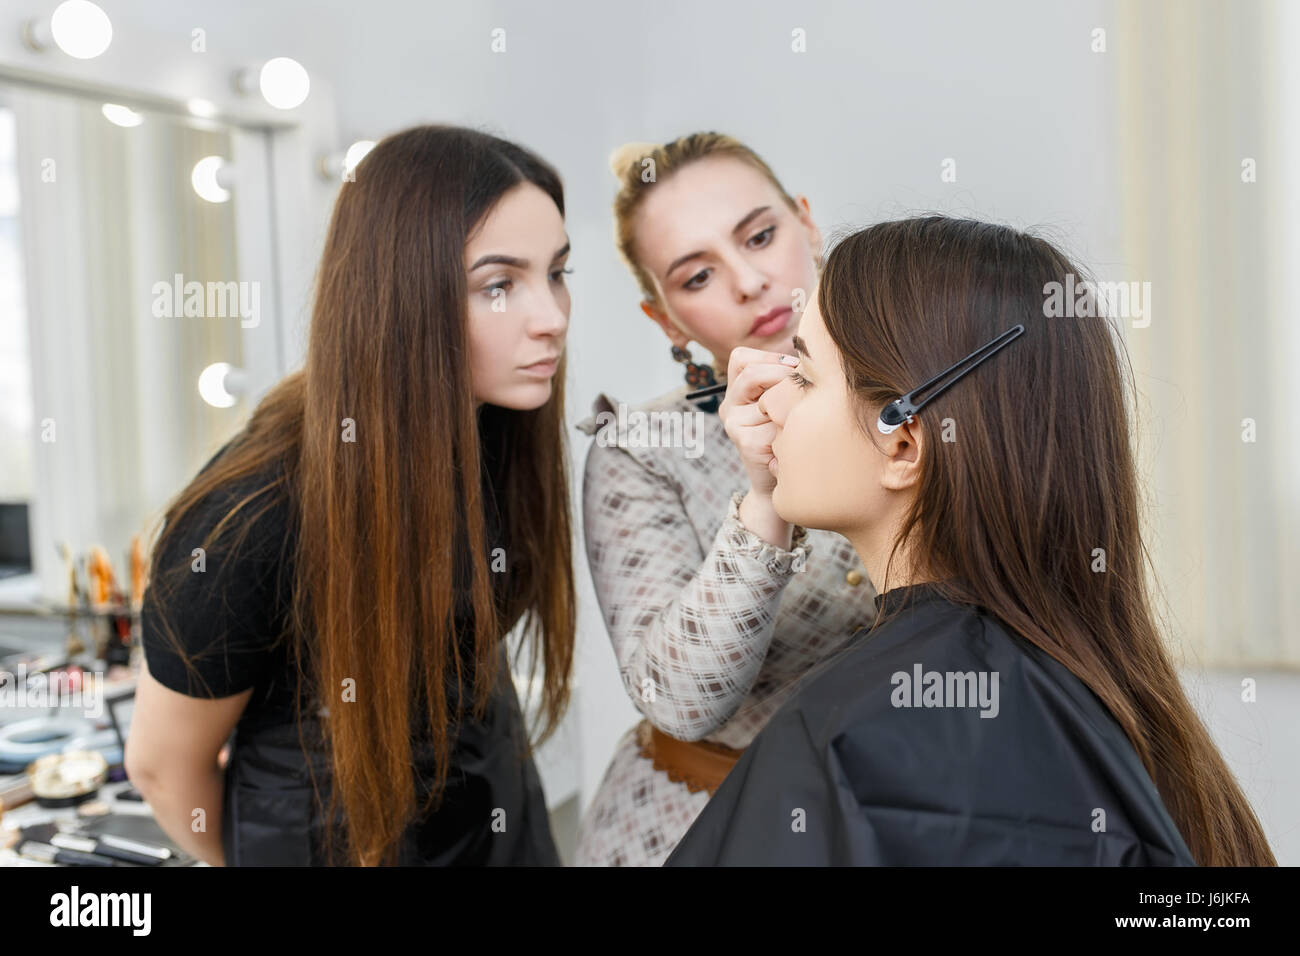 Makeup Course At Beauty School Professional Makeup Artist Conducts